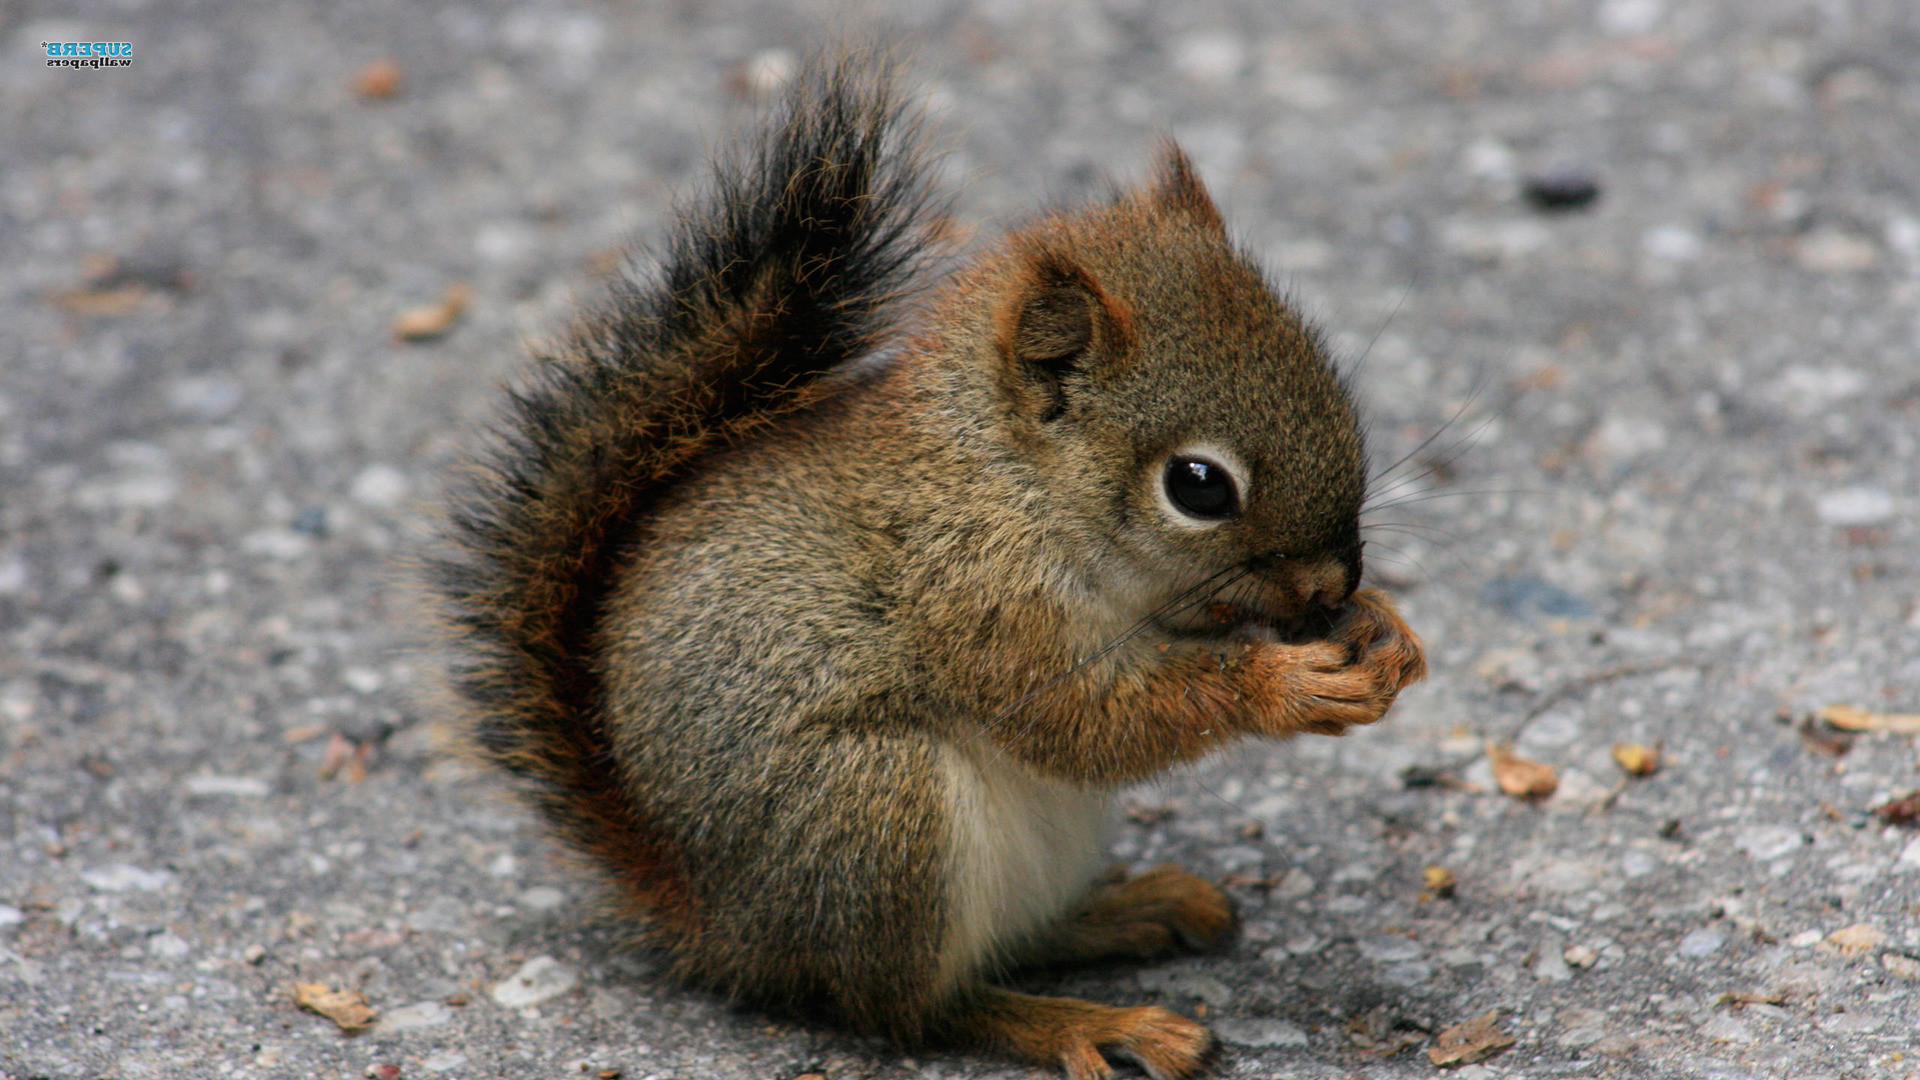 baby animals | Home › Animals › Cute Squirrel Baby Animal HD Wallpaper For .